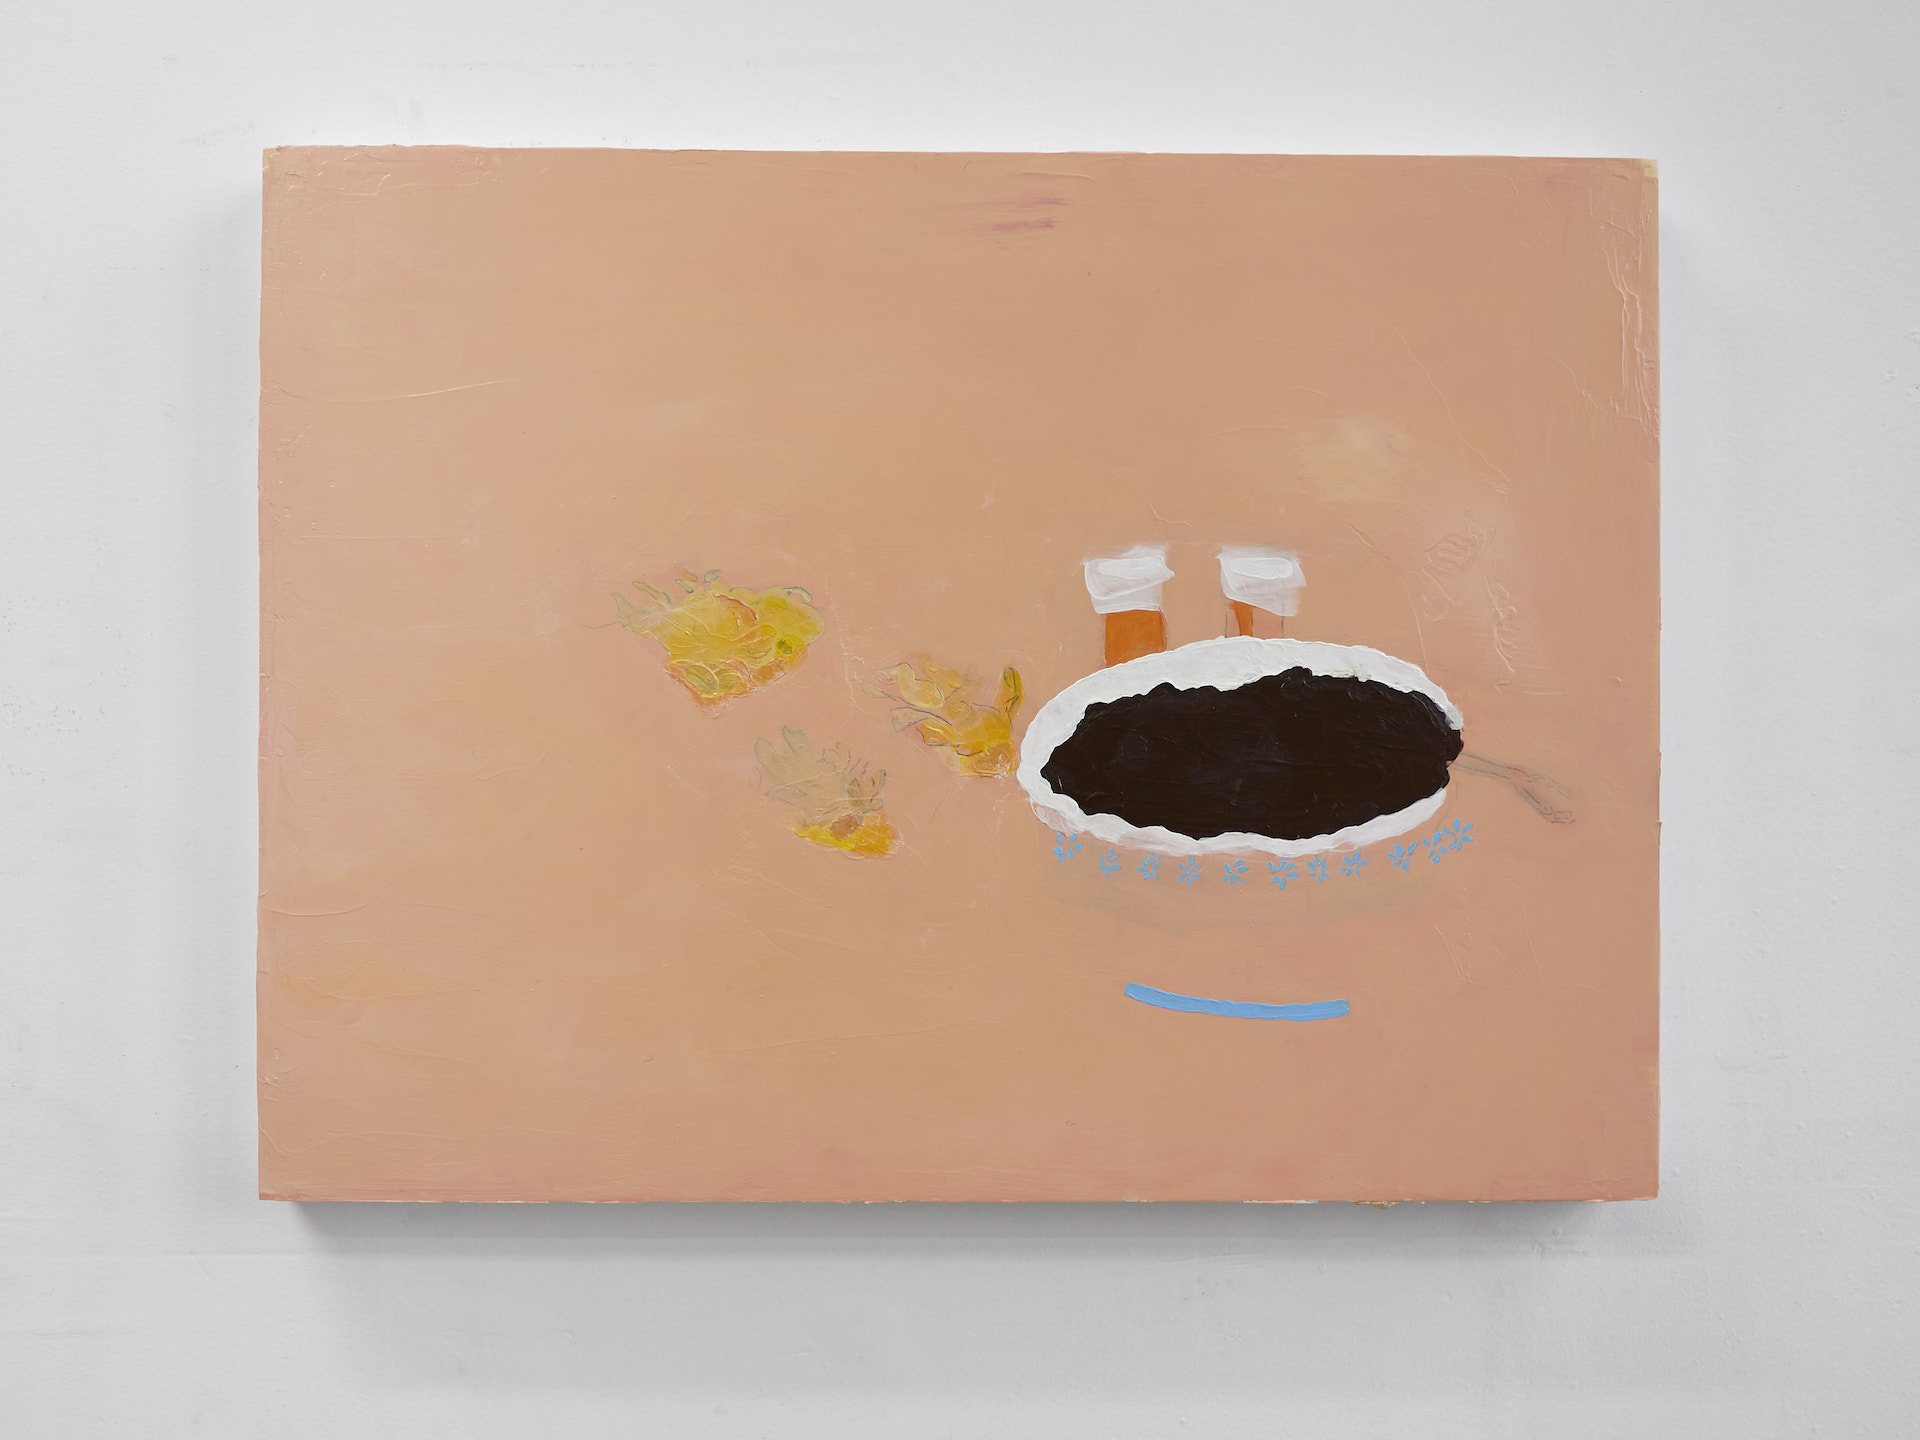 Angela Zhang, Still life with red bean soup and mom's cancer medicine, 2017, acrylic and graphite on wood panel, 18 x 24 in